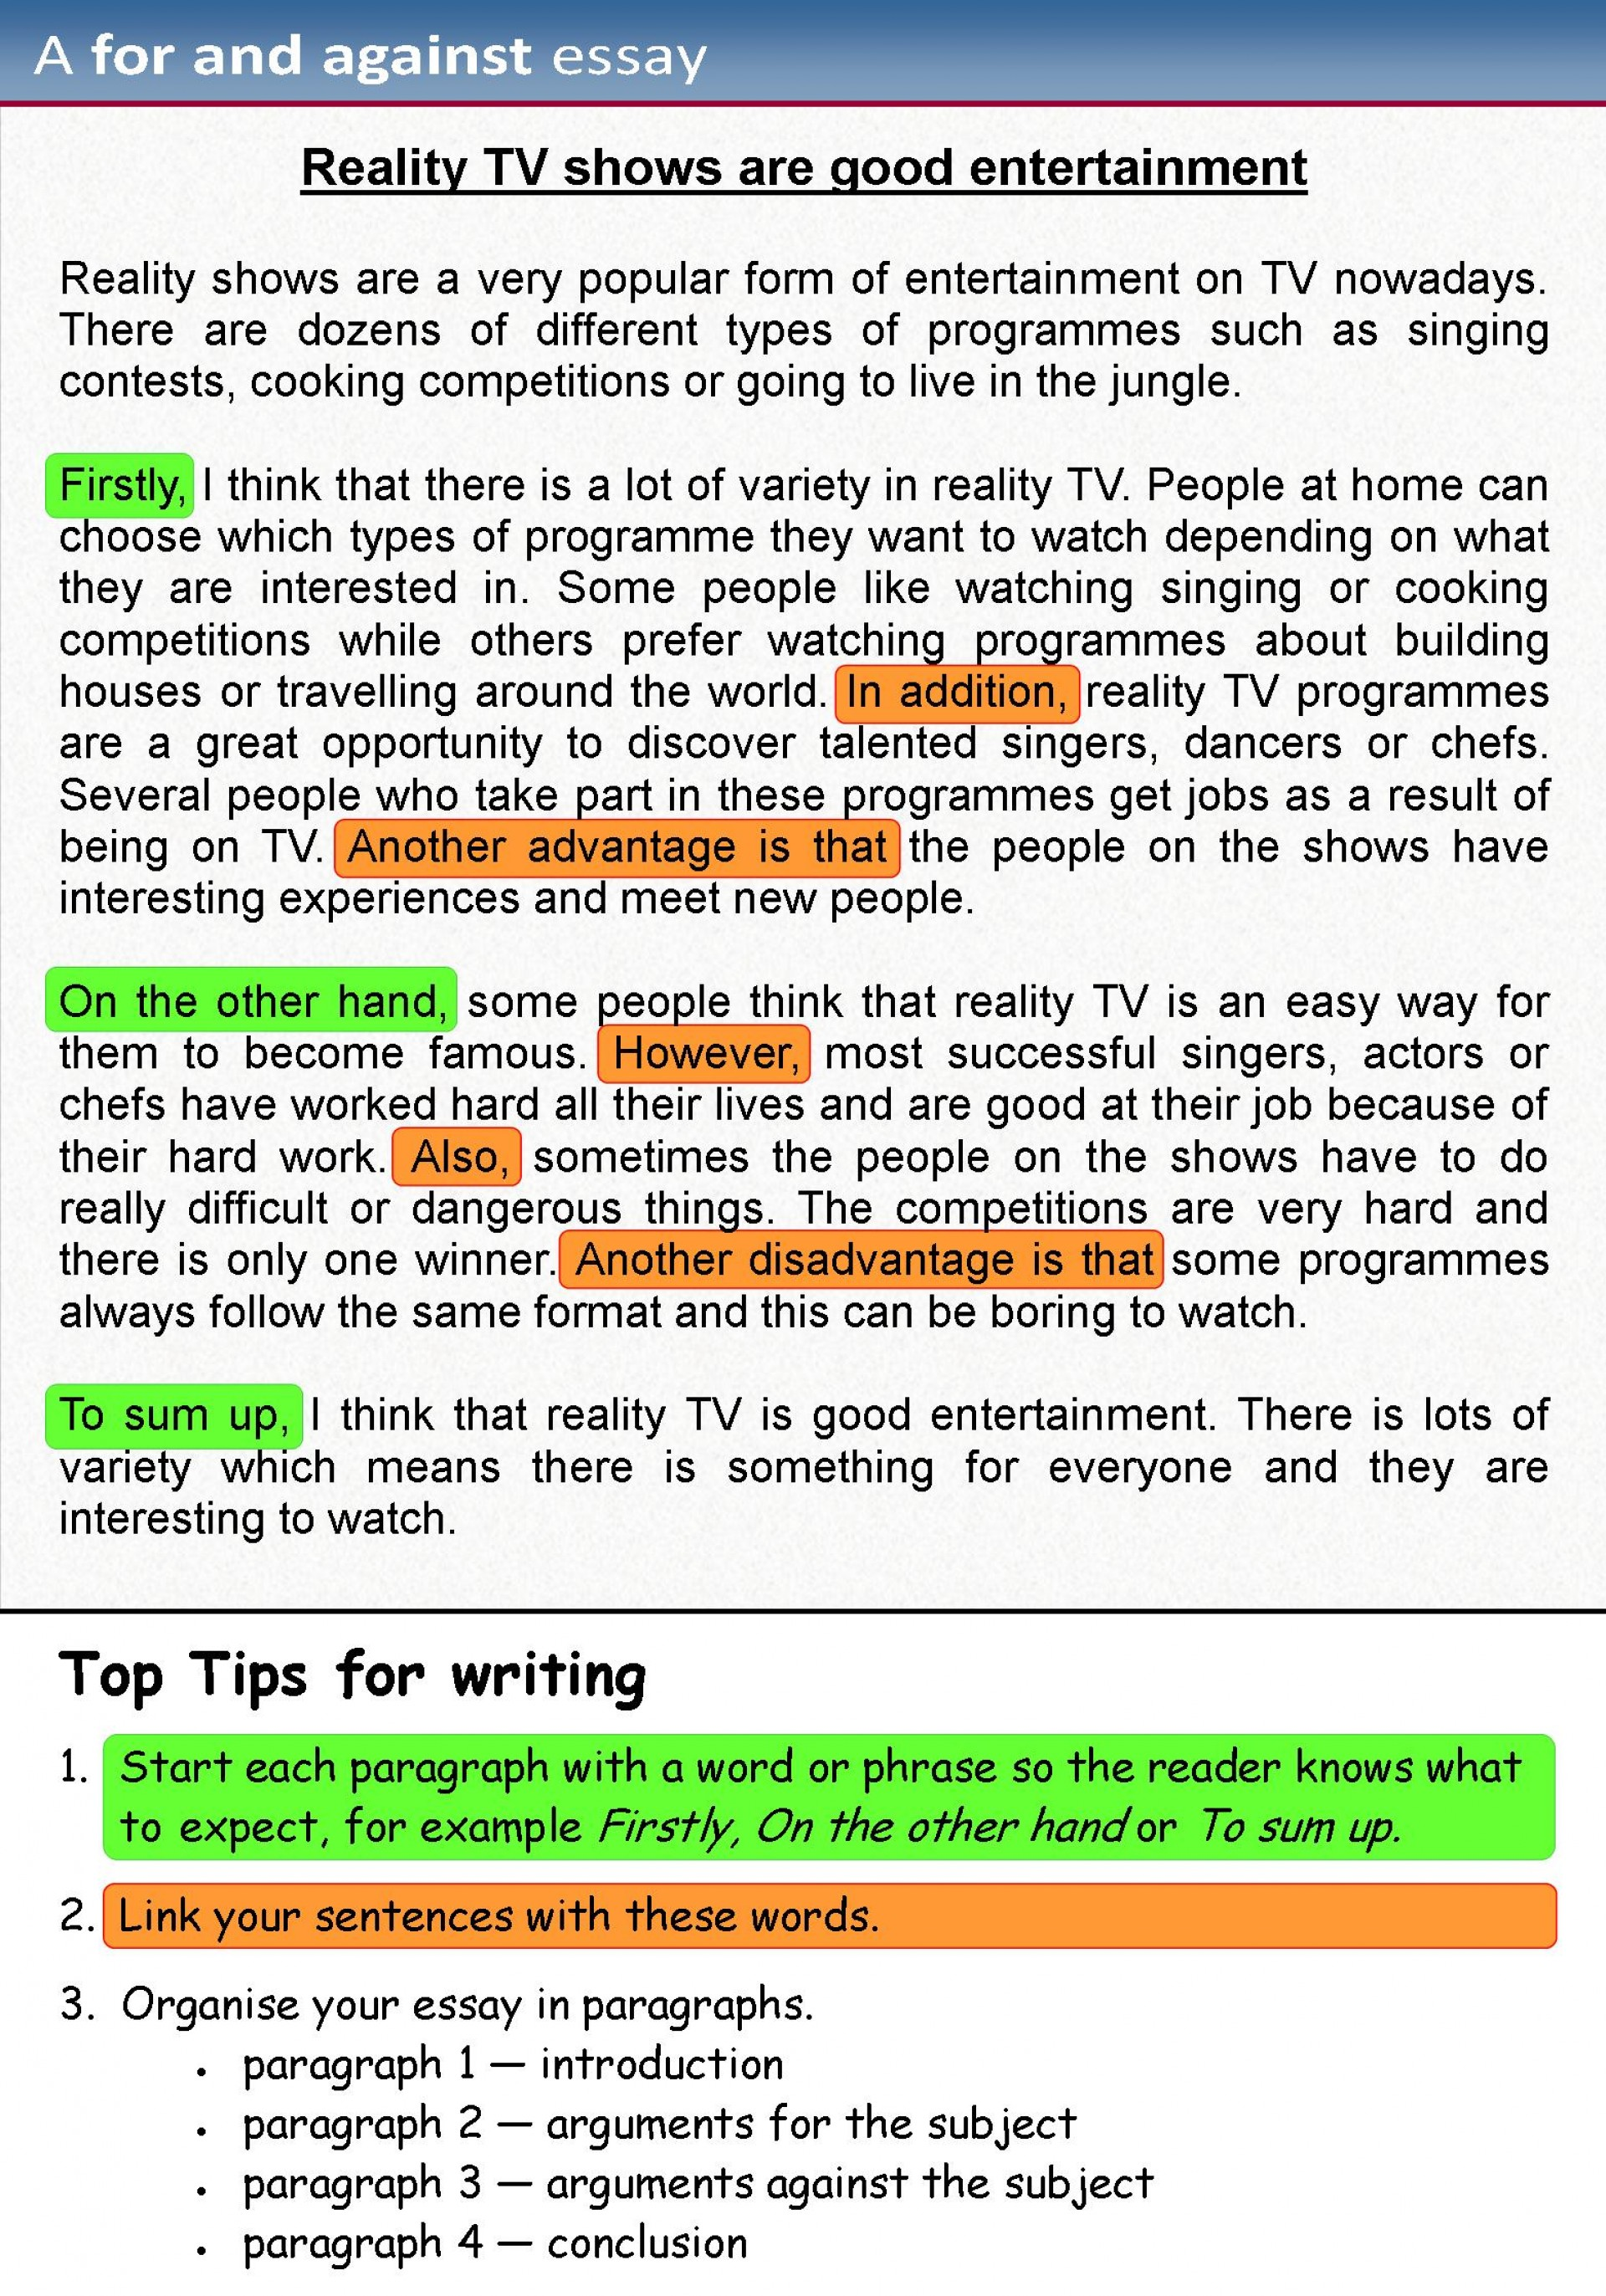 016 For Against Essay 1 Funny Essays Stupendous Examples Composition Topics On School Life 1920